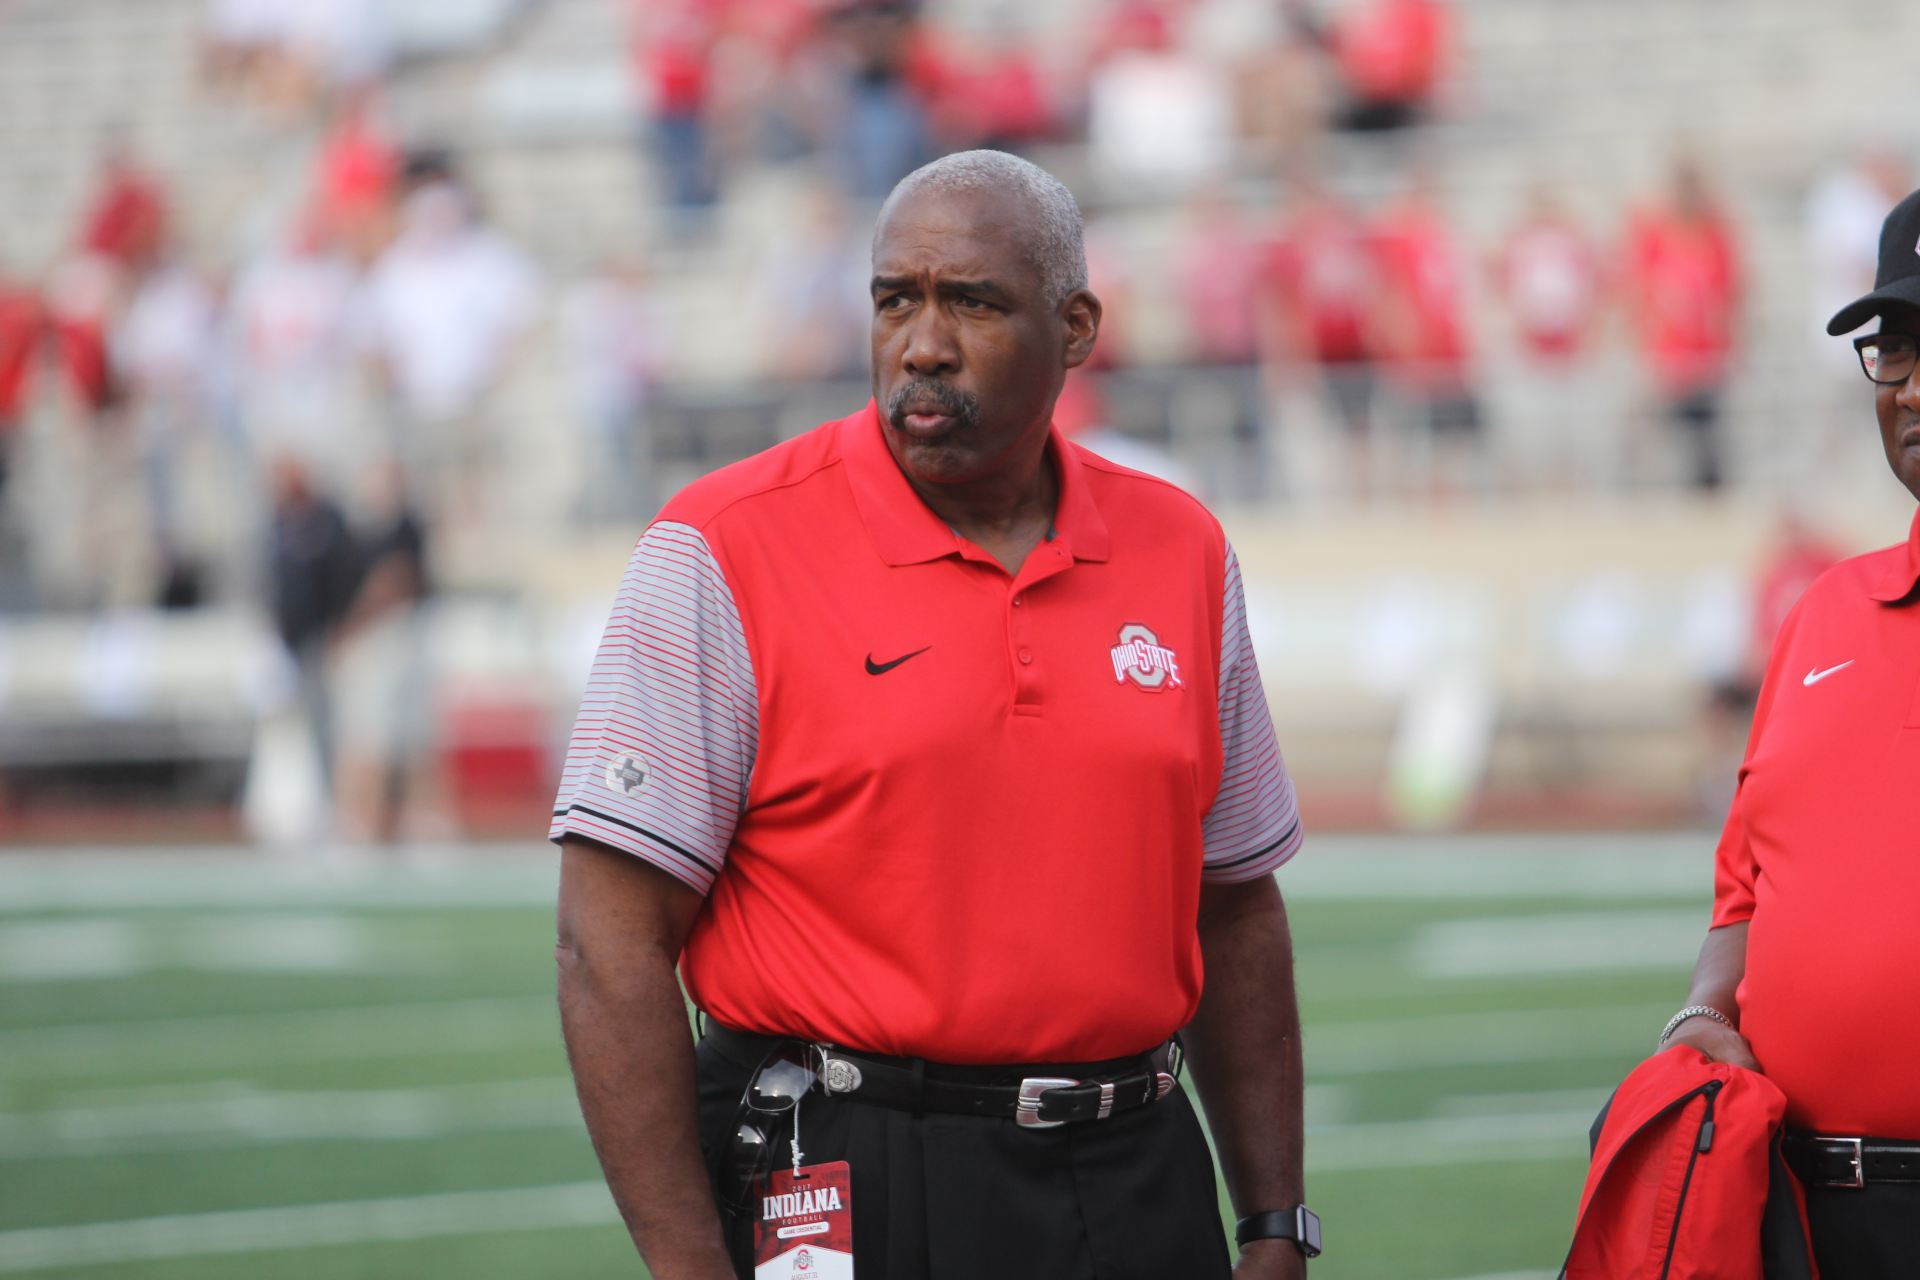 Gene Smith walks on the field at Ohio Stadium before a game